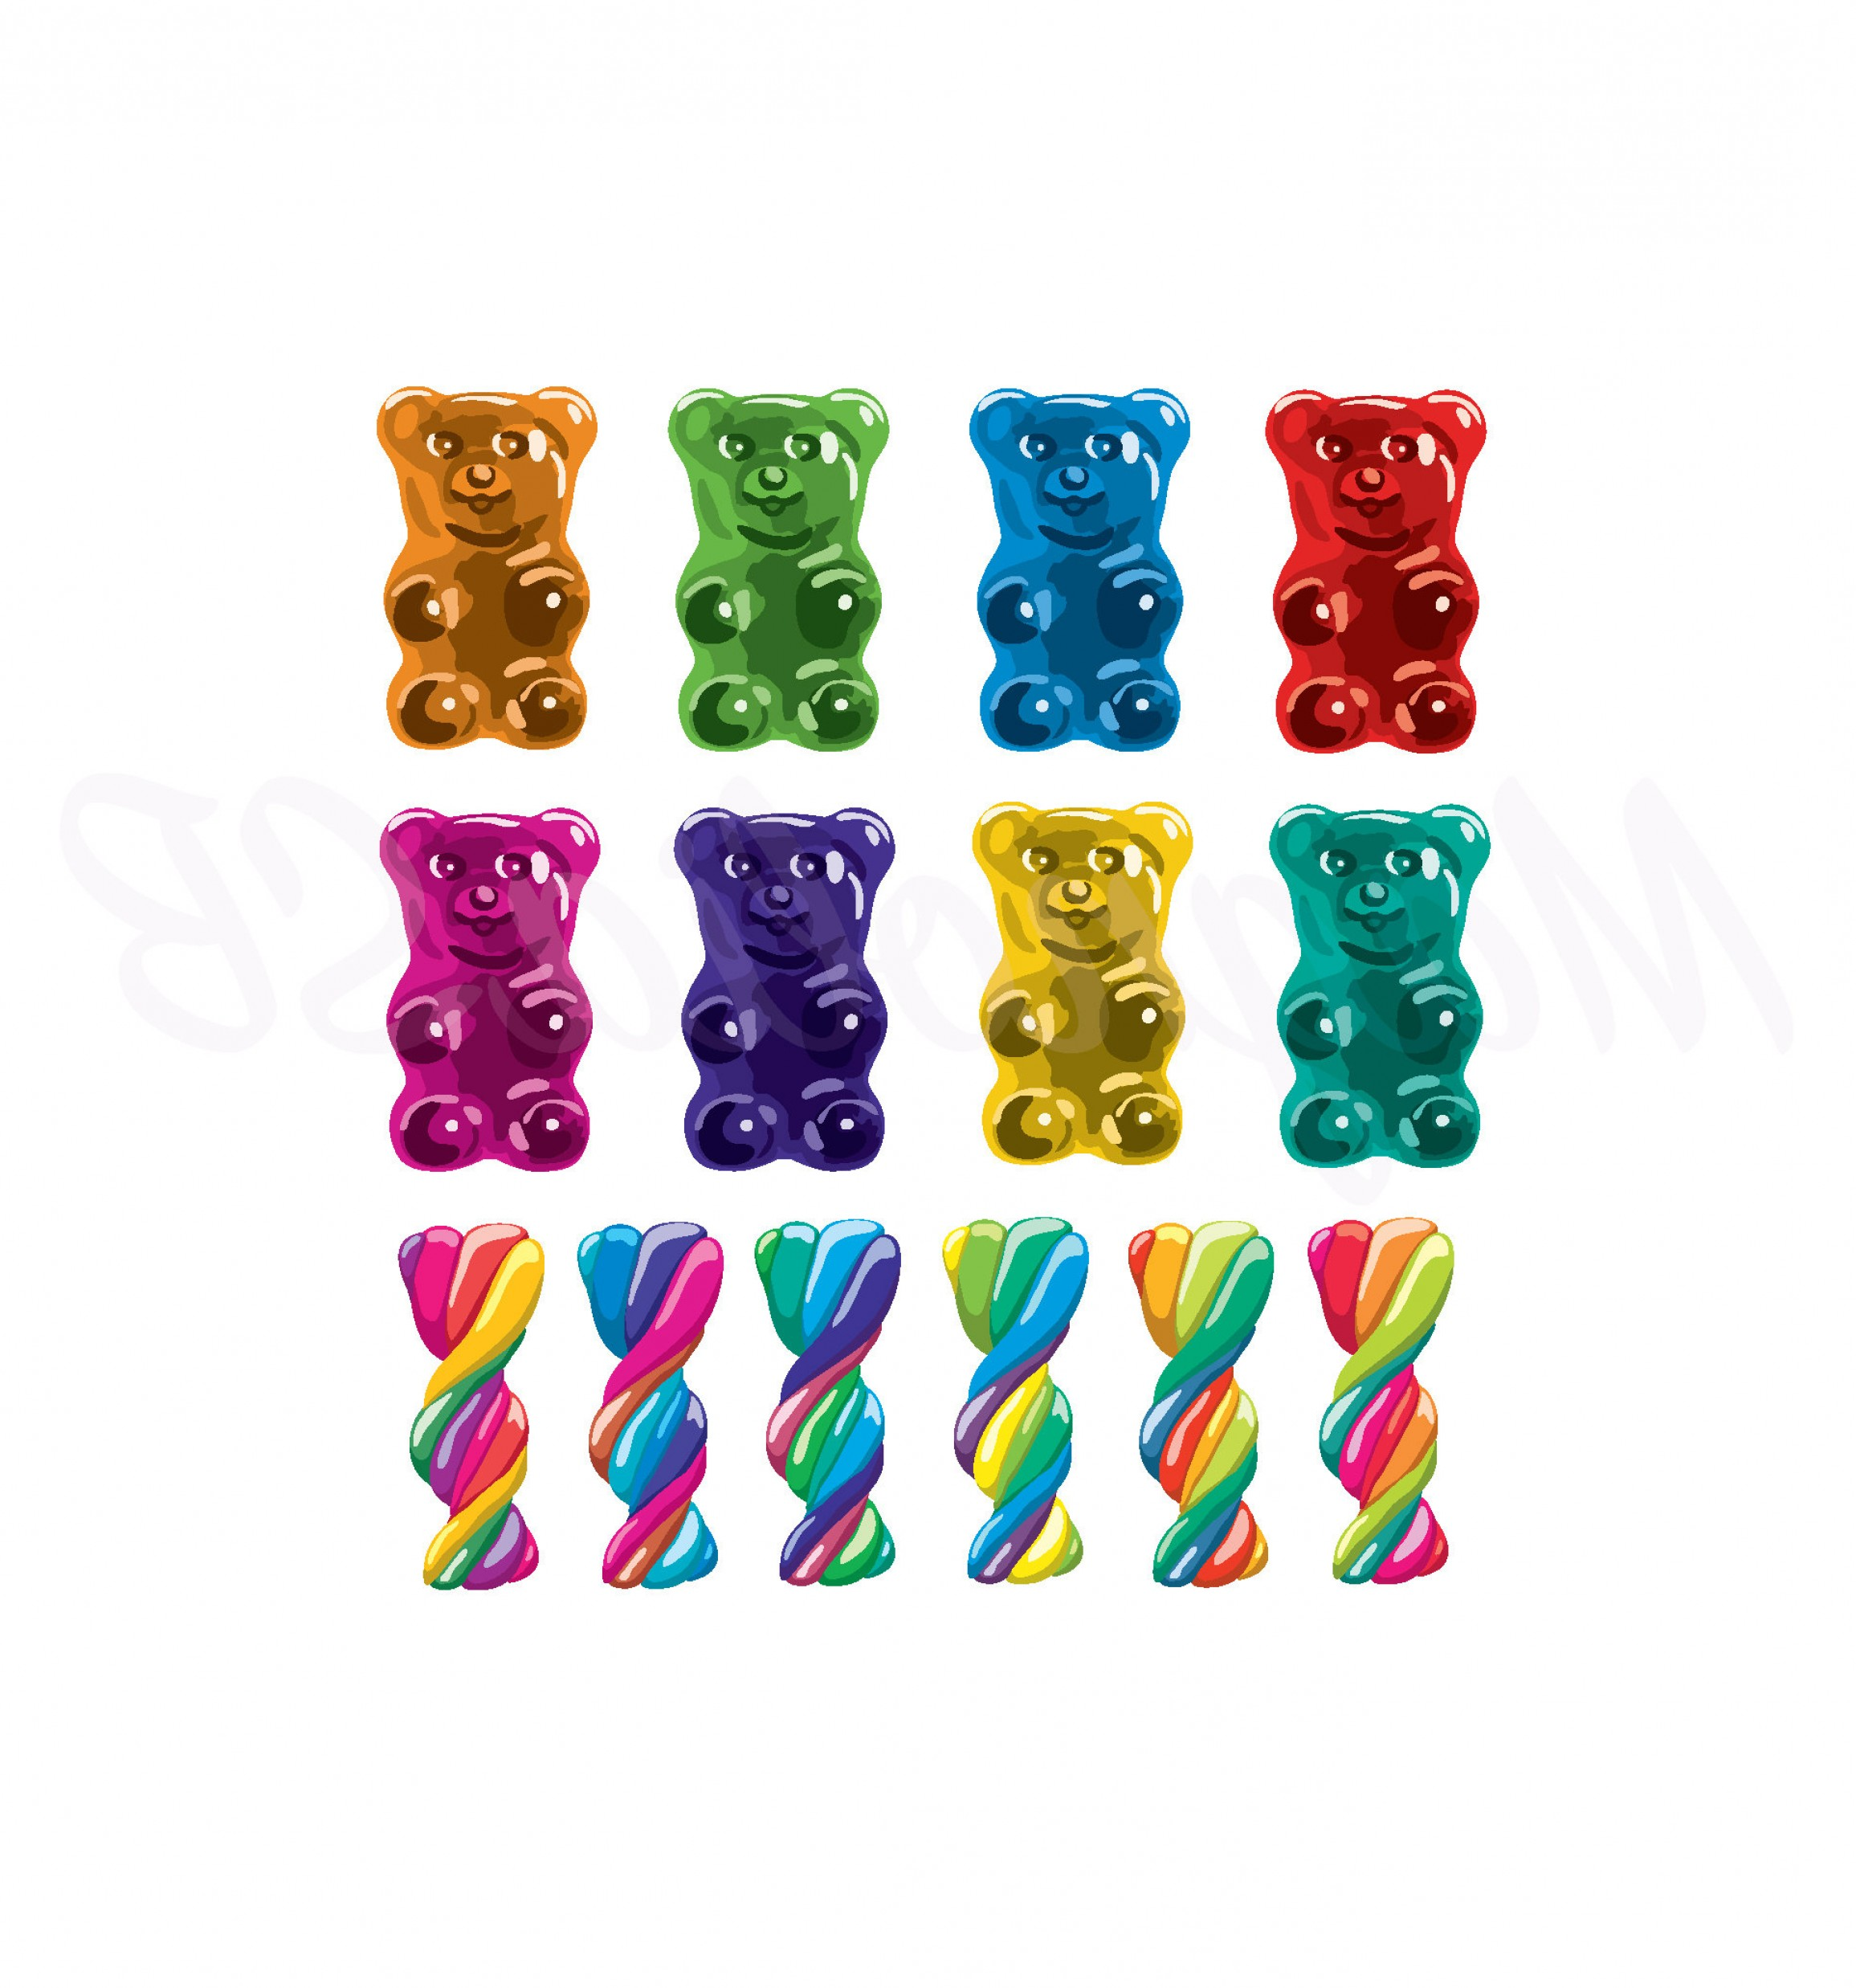 Gummy Bear Vector: Gummy Bears And Twister Candies Digital